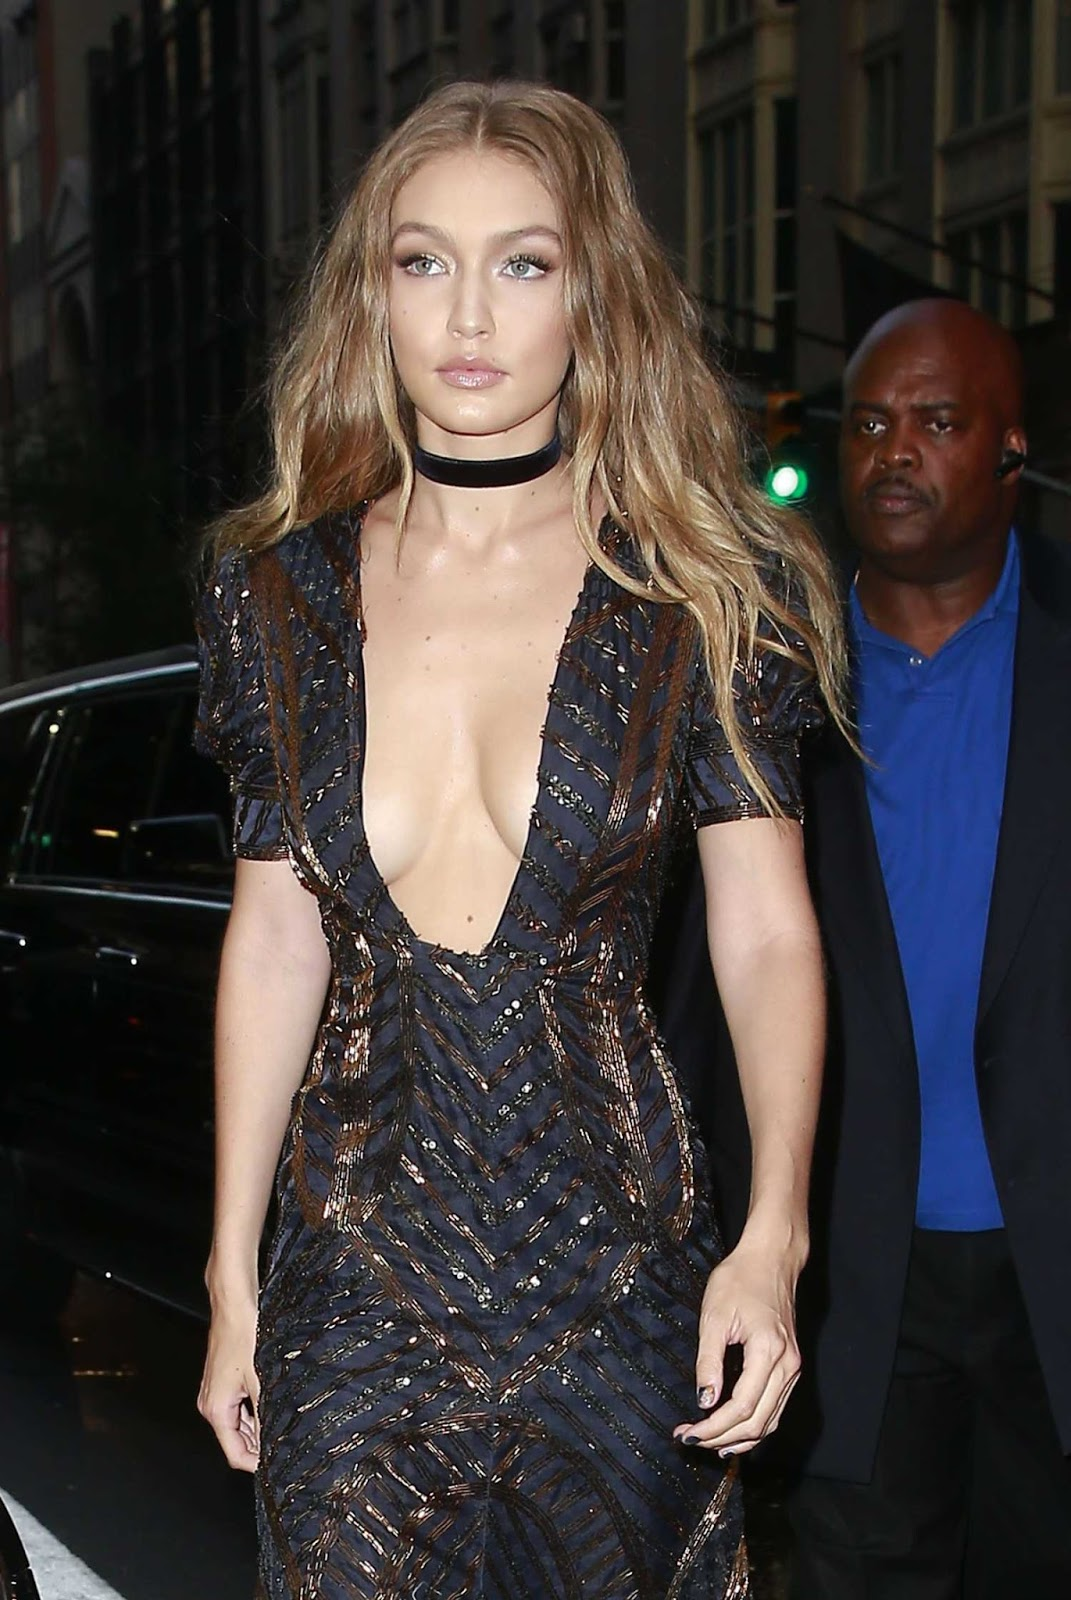 Gigi Hadid goes for the daring plunge at the Daily Front Row Fashion Awards in NYC